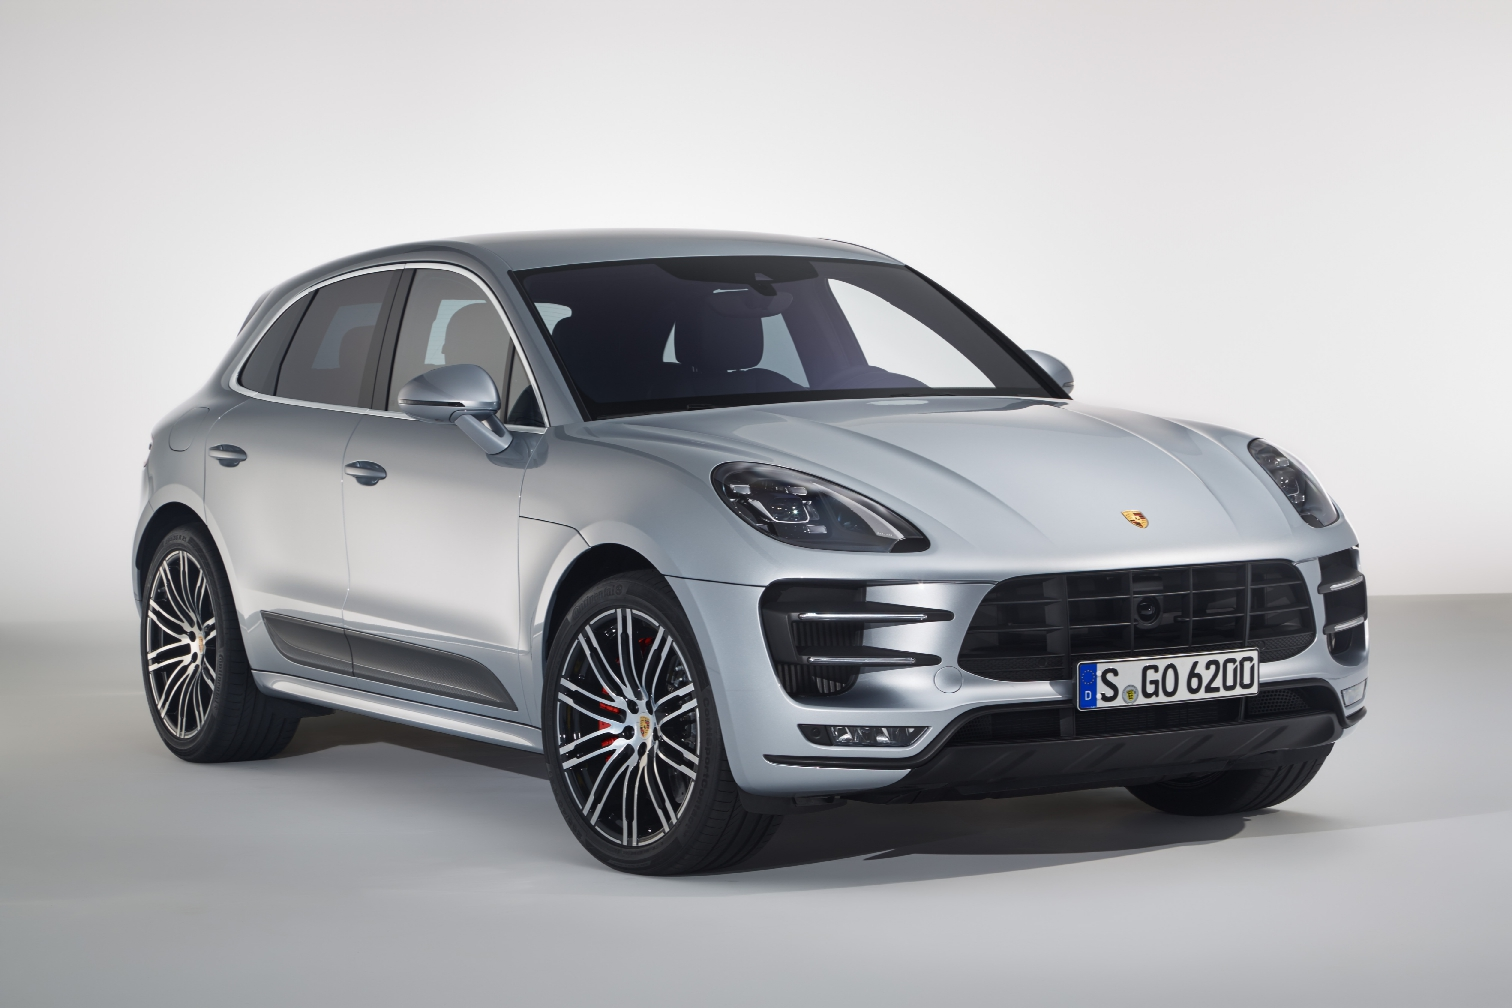 Porsche Macan Turbo Exclusive Performance Package zilver grijs 2017 02